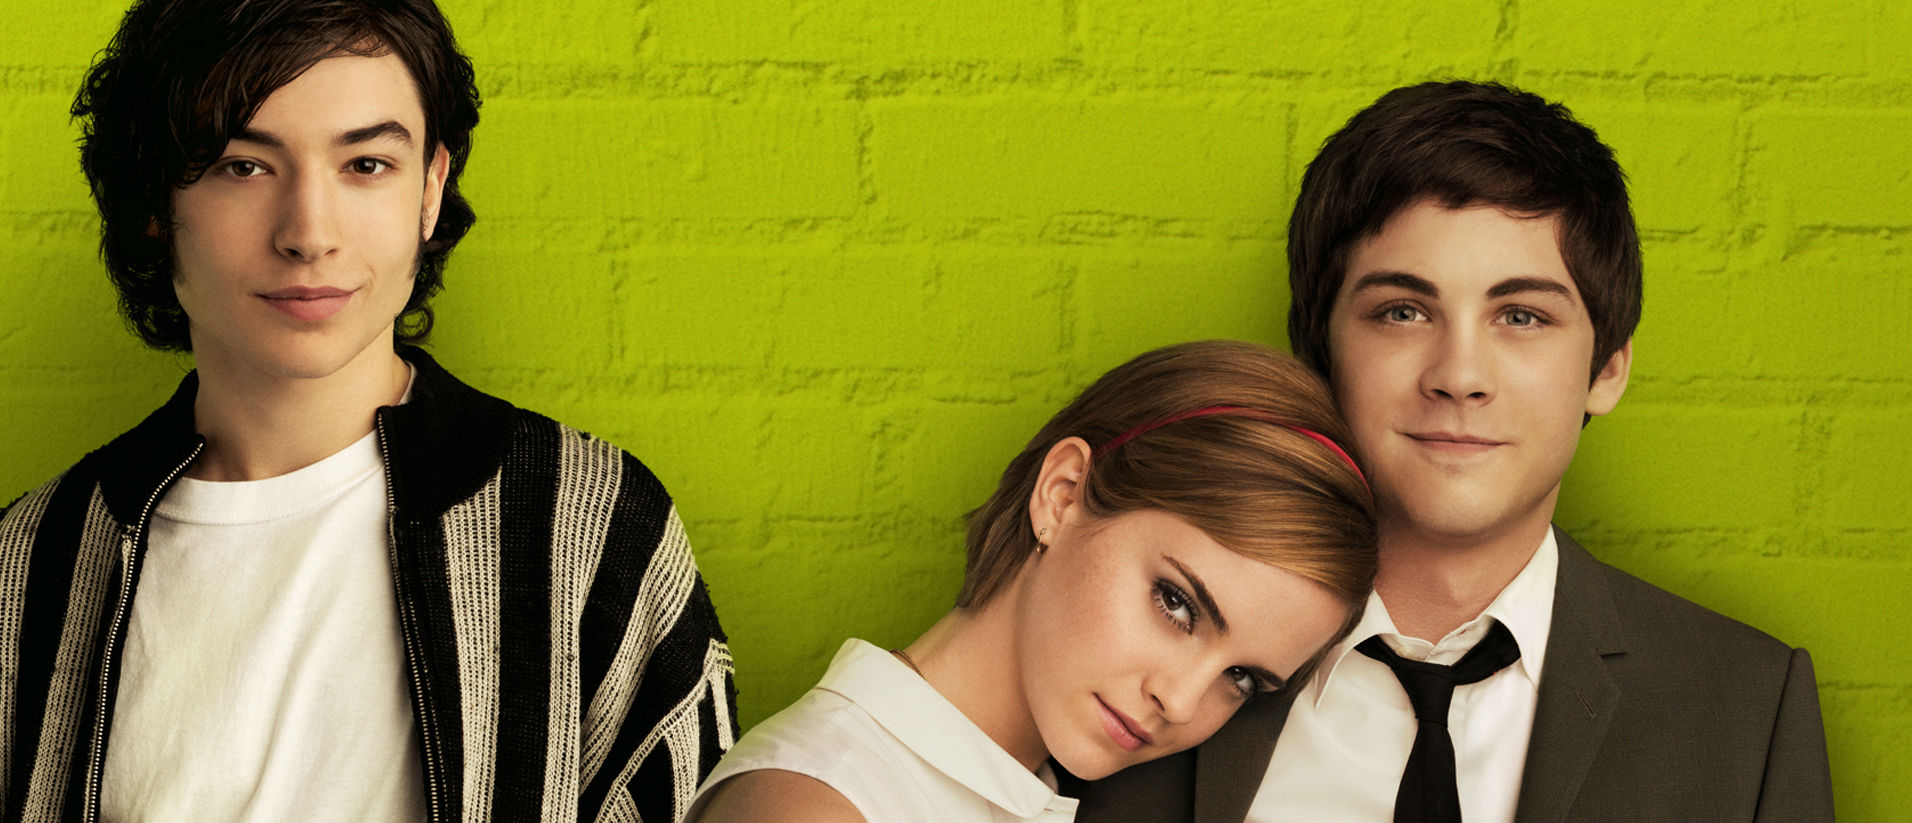 «The Perks of Being a Wallflower»